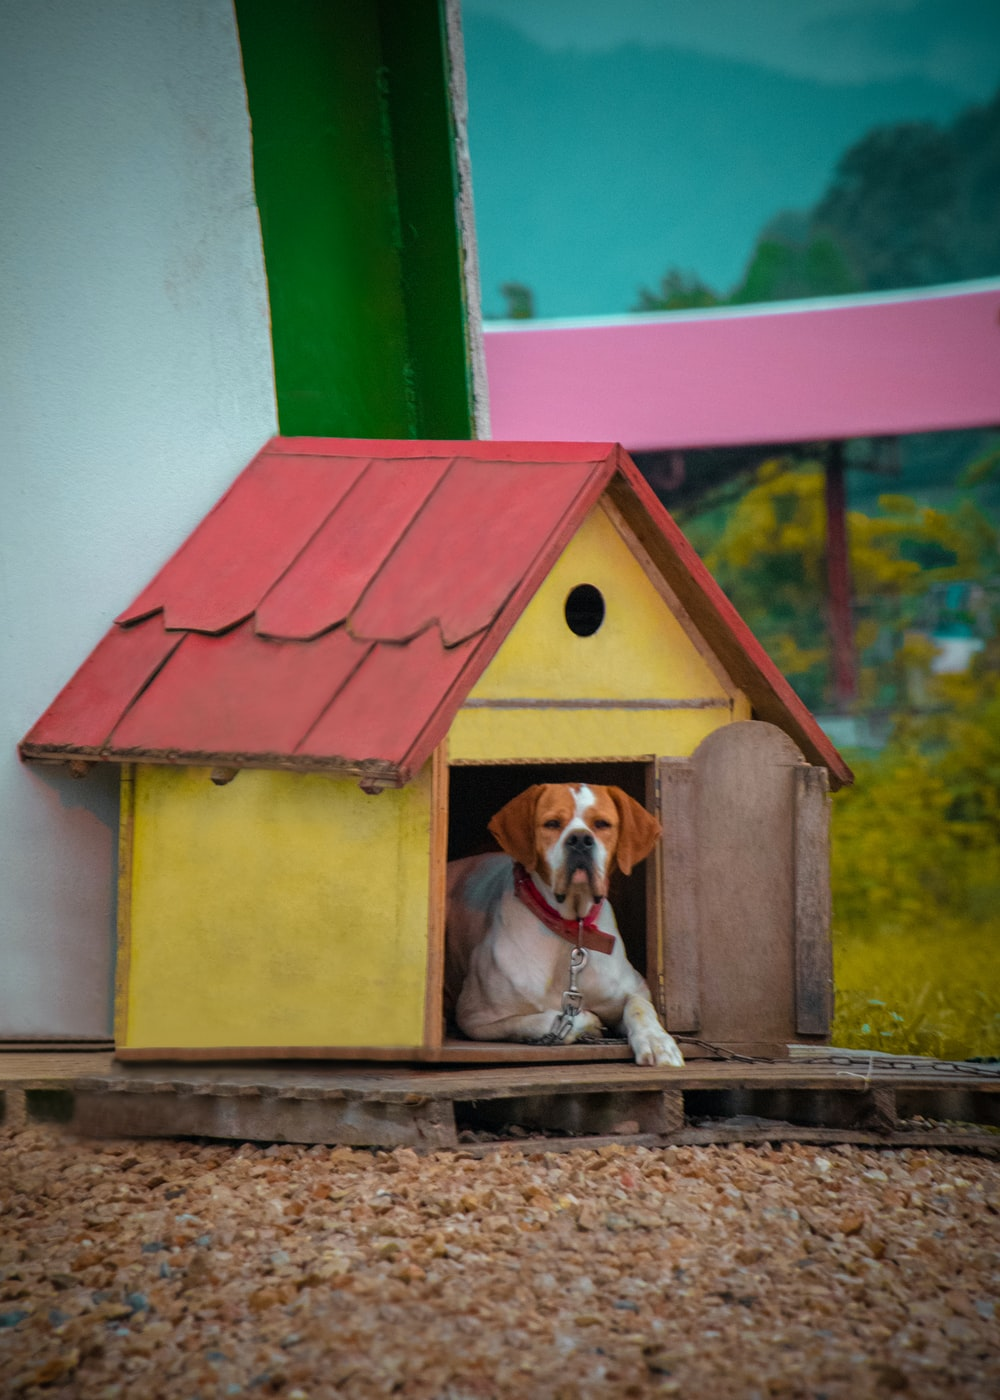 brown and white short coated dog on red and green wooden house